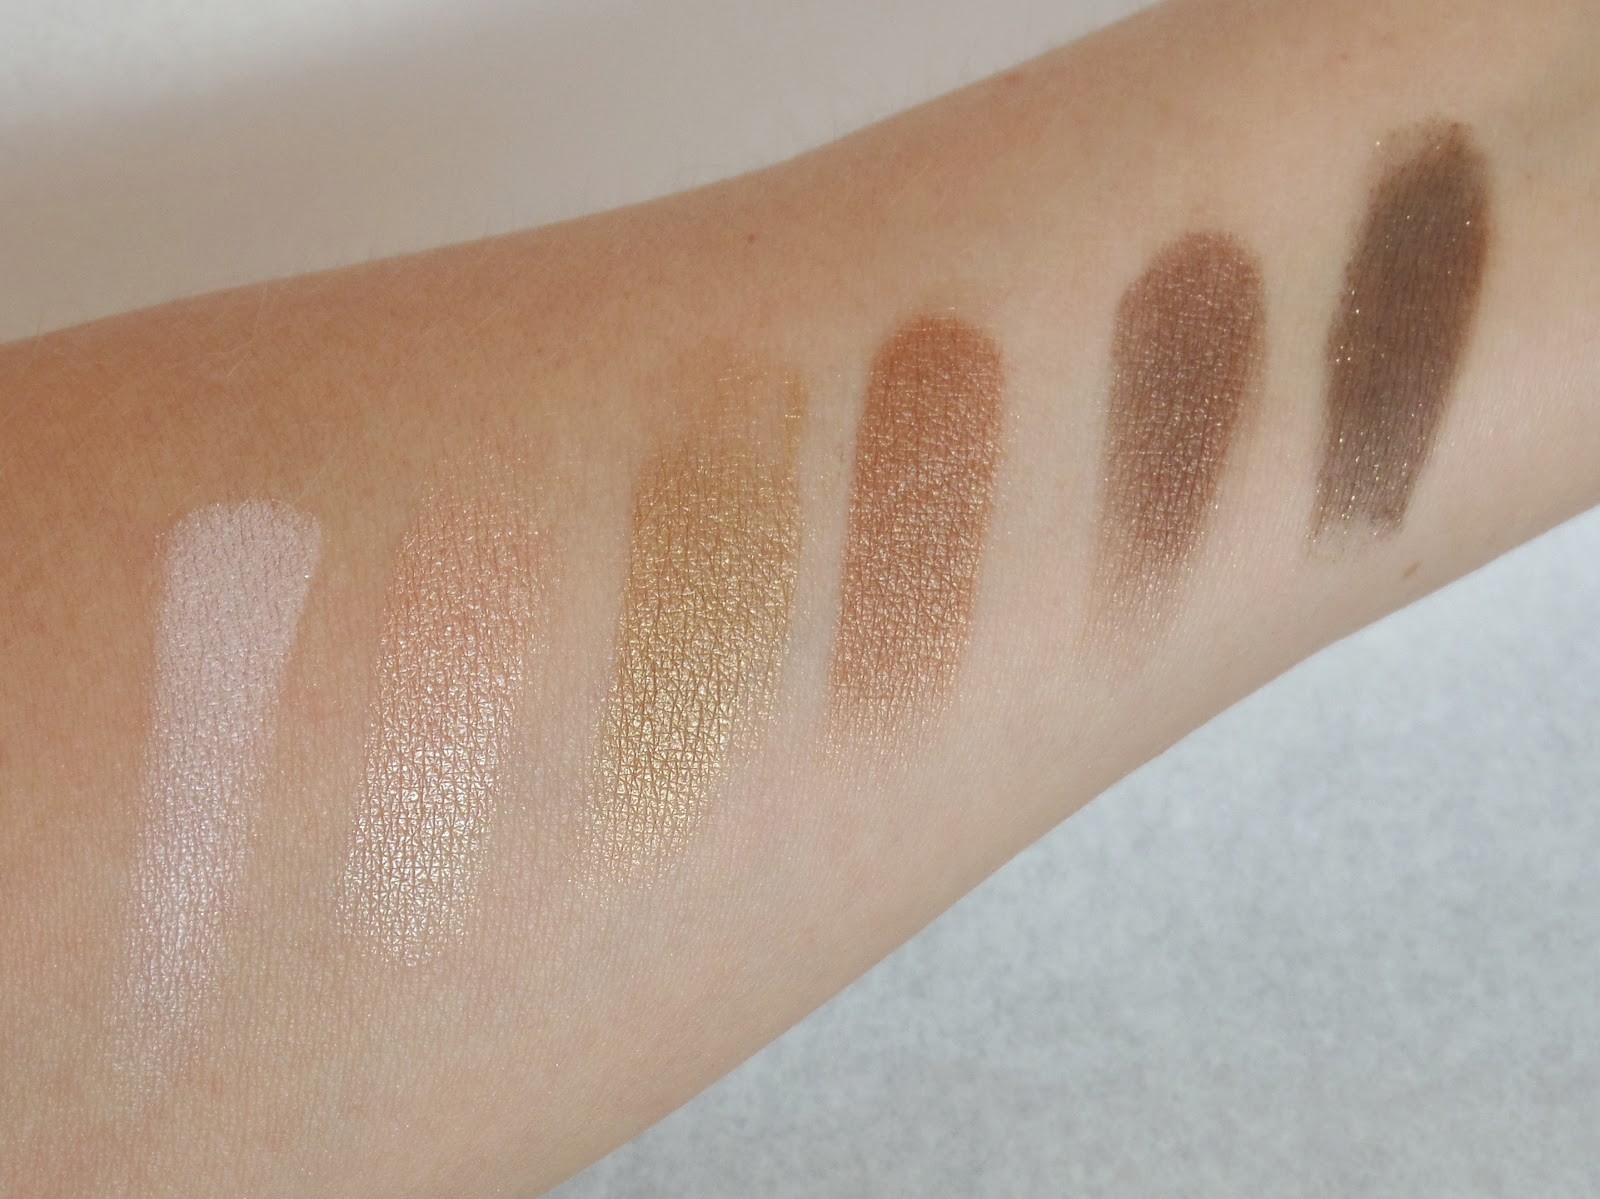 Natural At Night Eyeshadow Palette by Too Faced #10